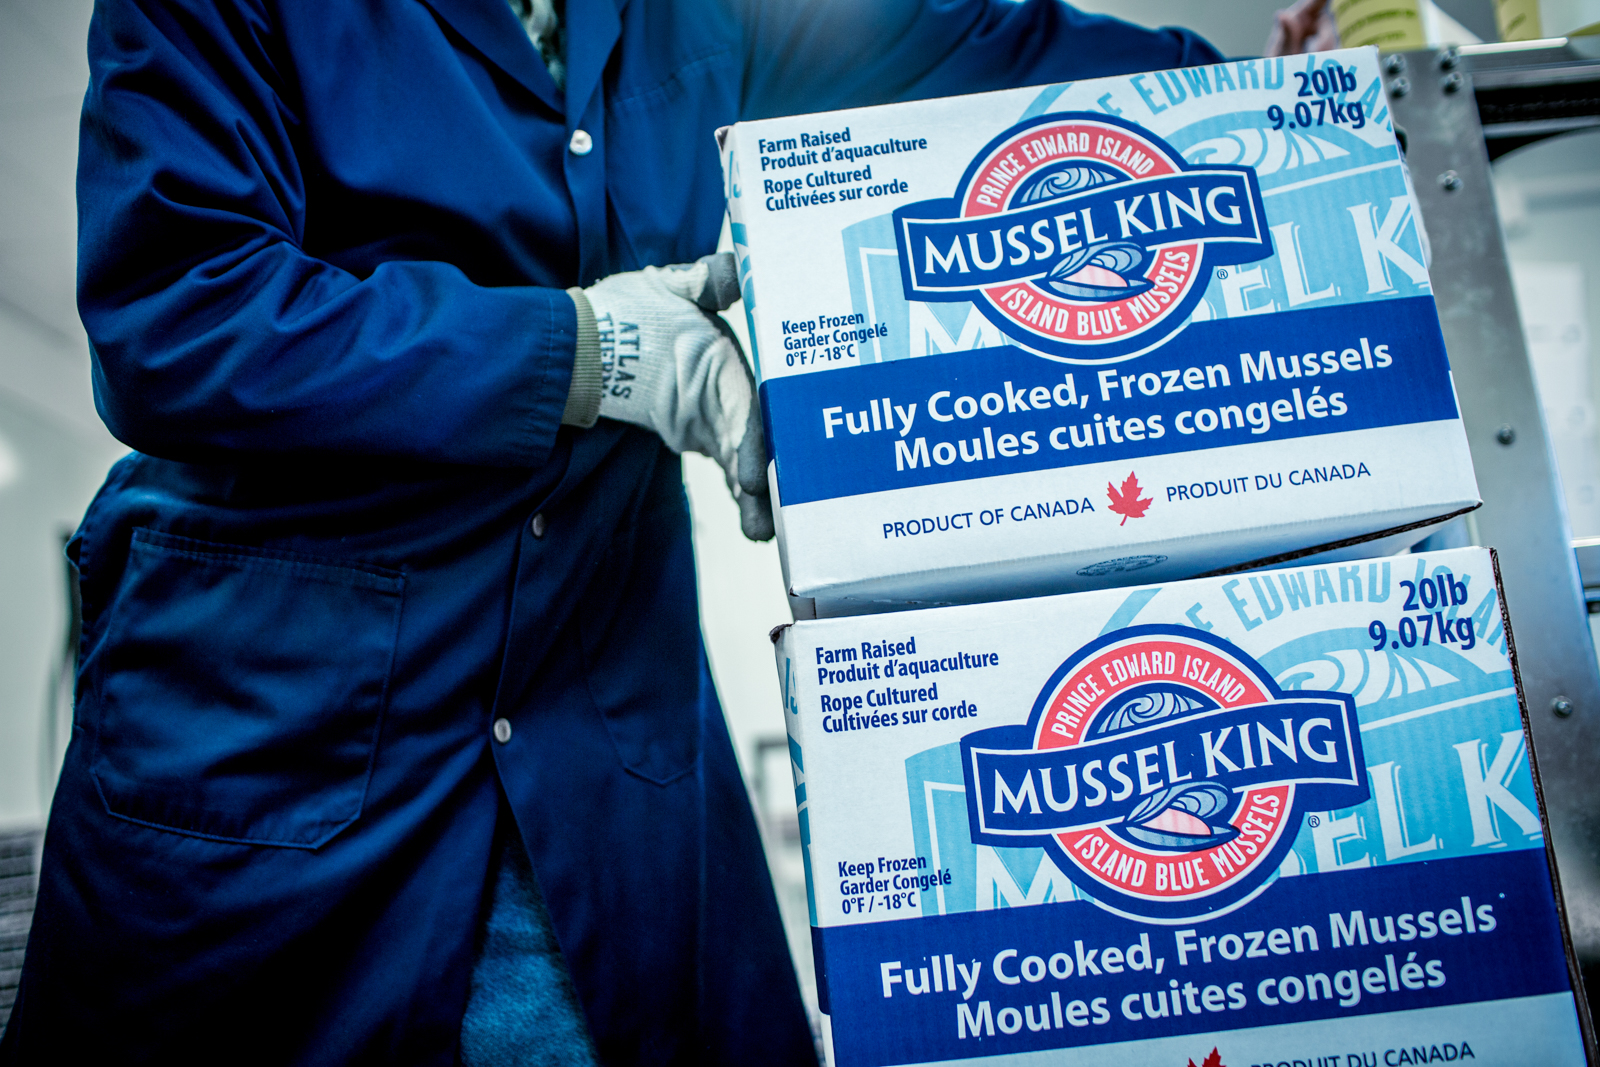 PEI Mussel King boxes